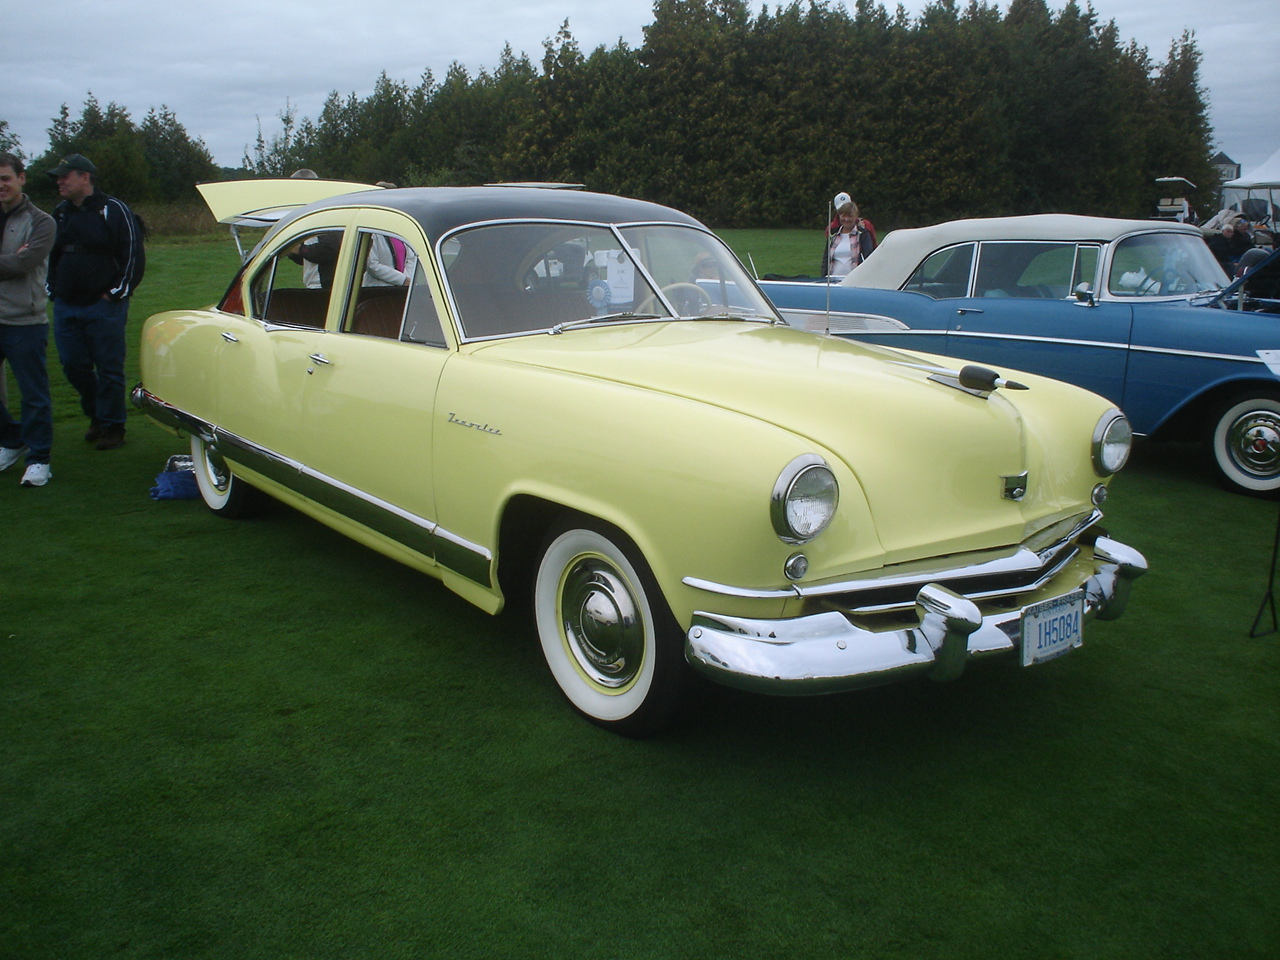 1952 Kaiser Virginian Deluxe Traveler 4-Door Sedan -2.JPG